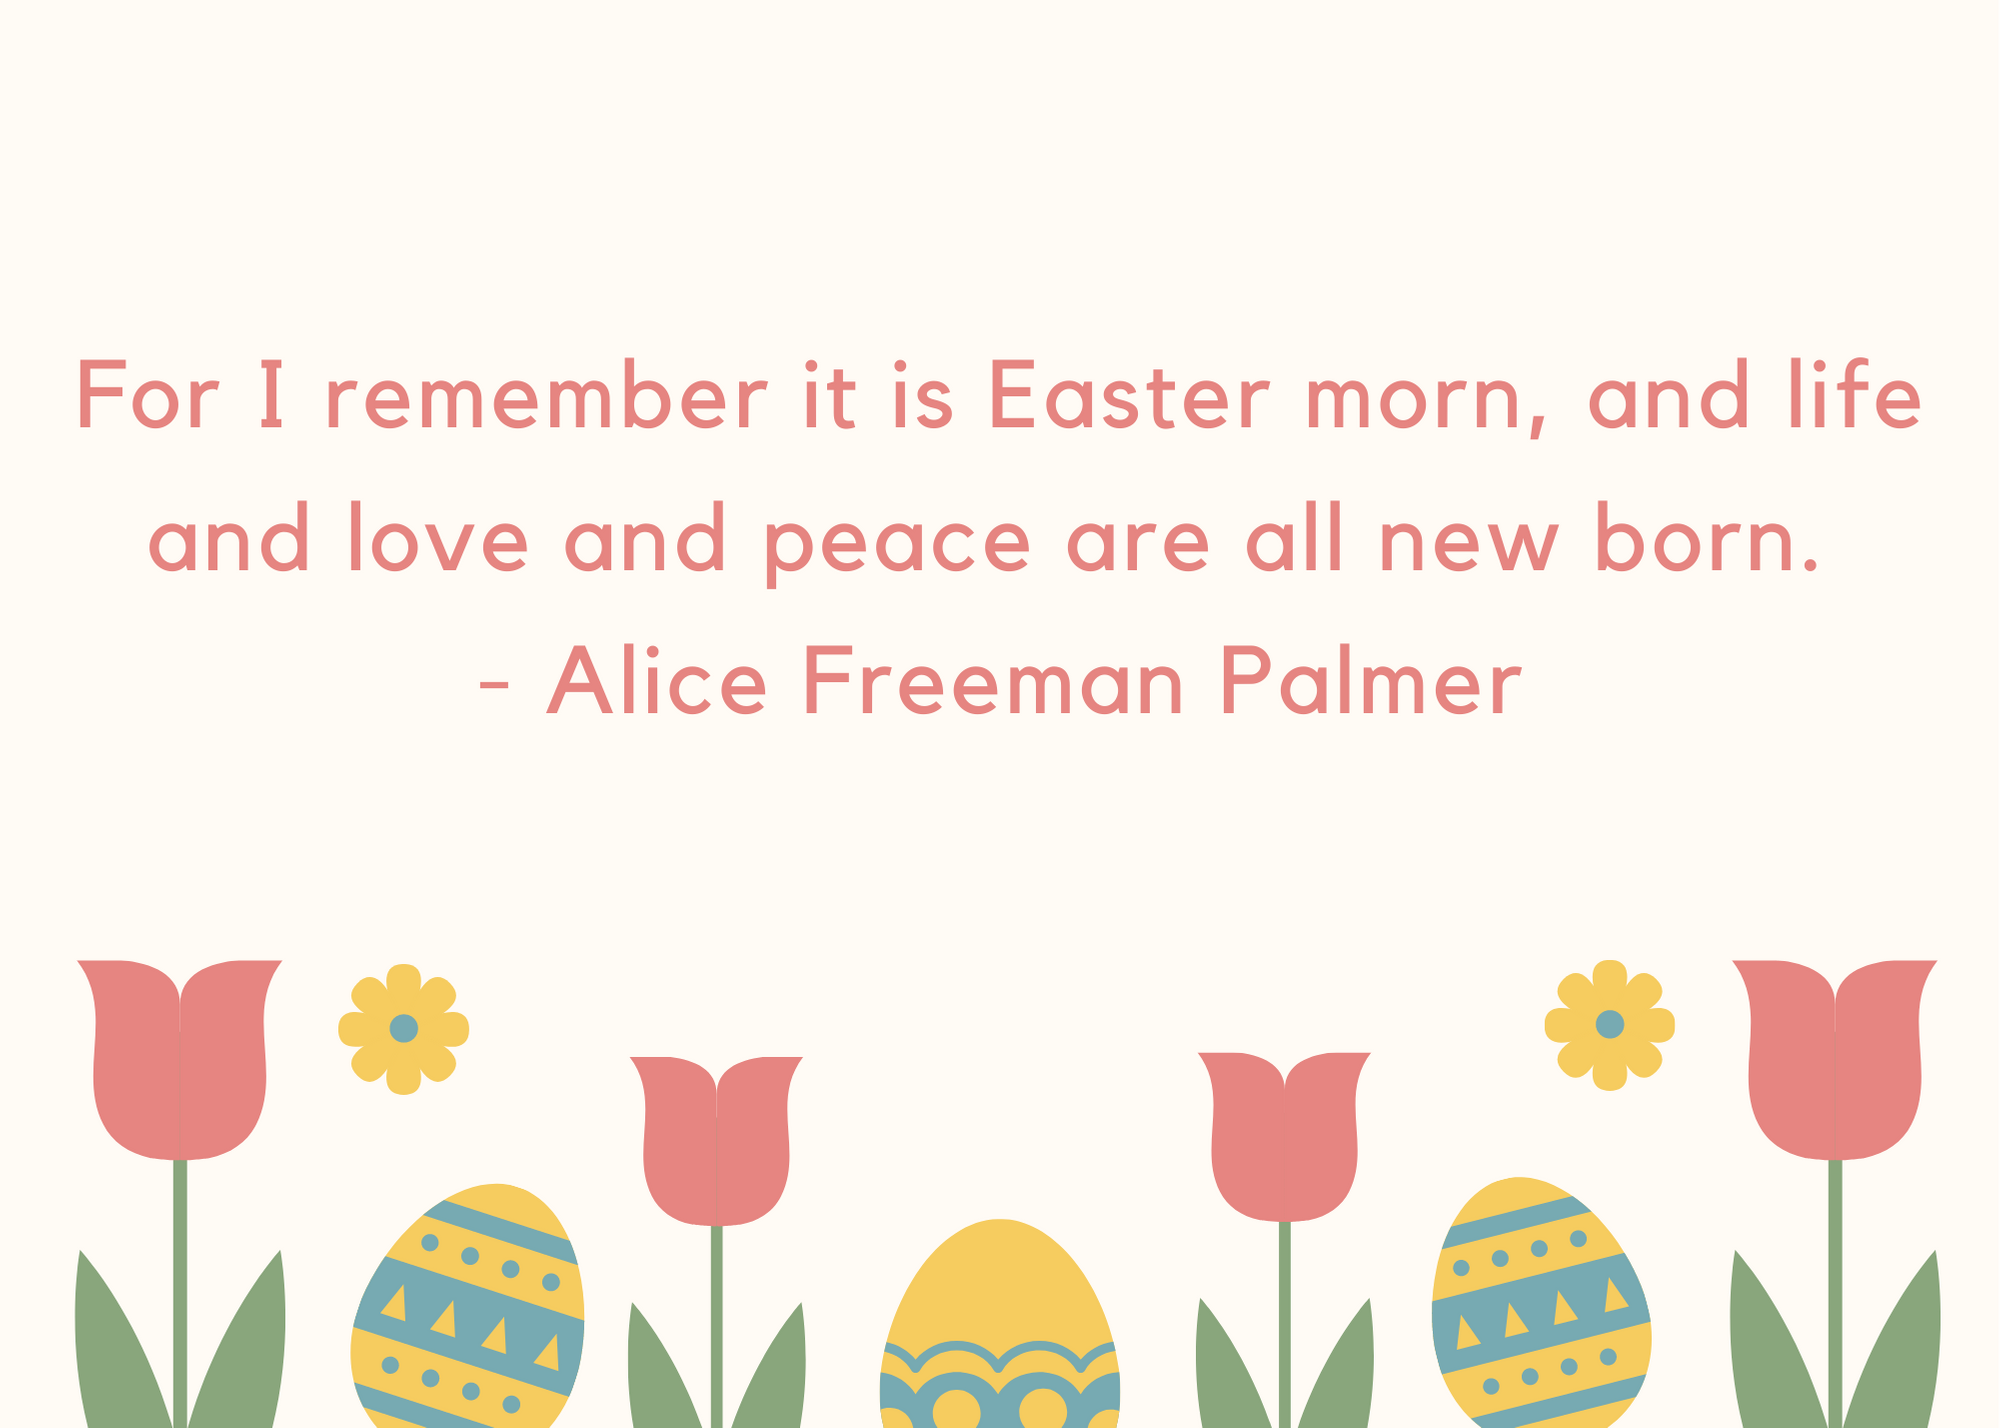 For I remember it is Easter morn, and life and love and peace are all new born. - Alice Freeman Palmer